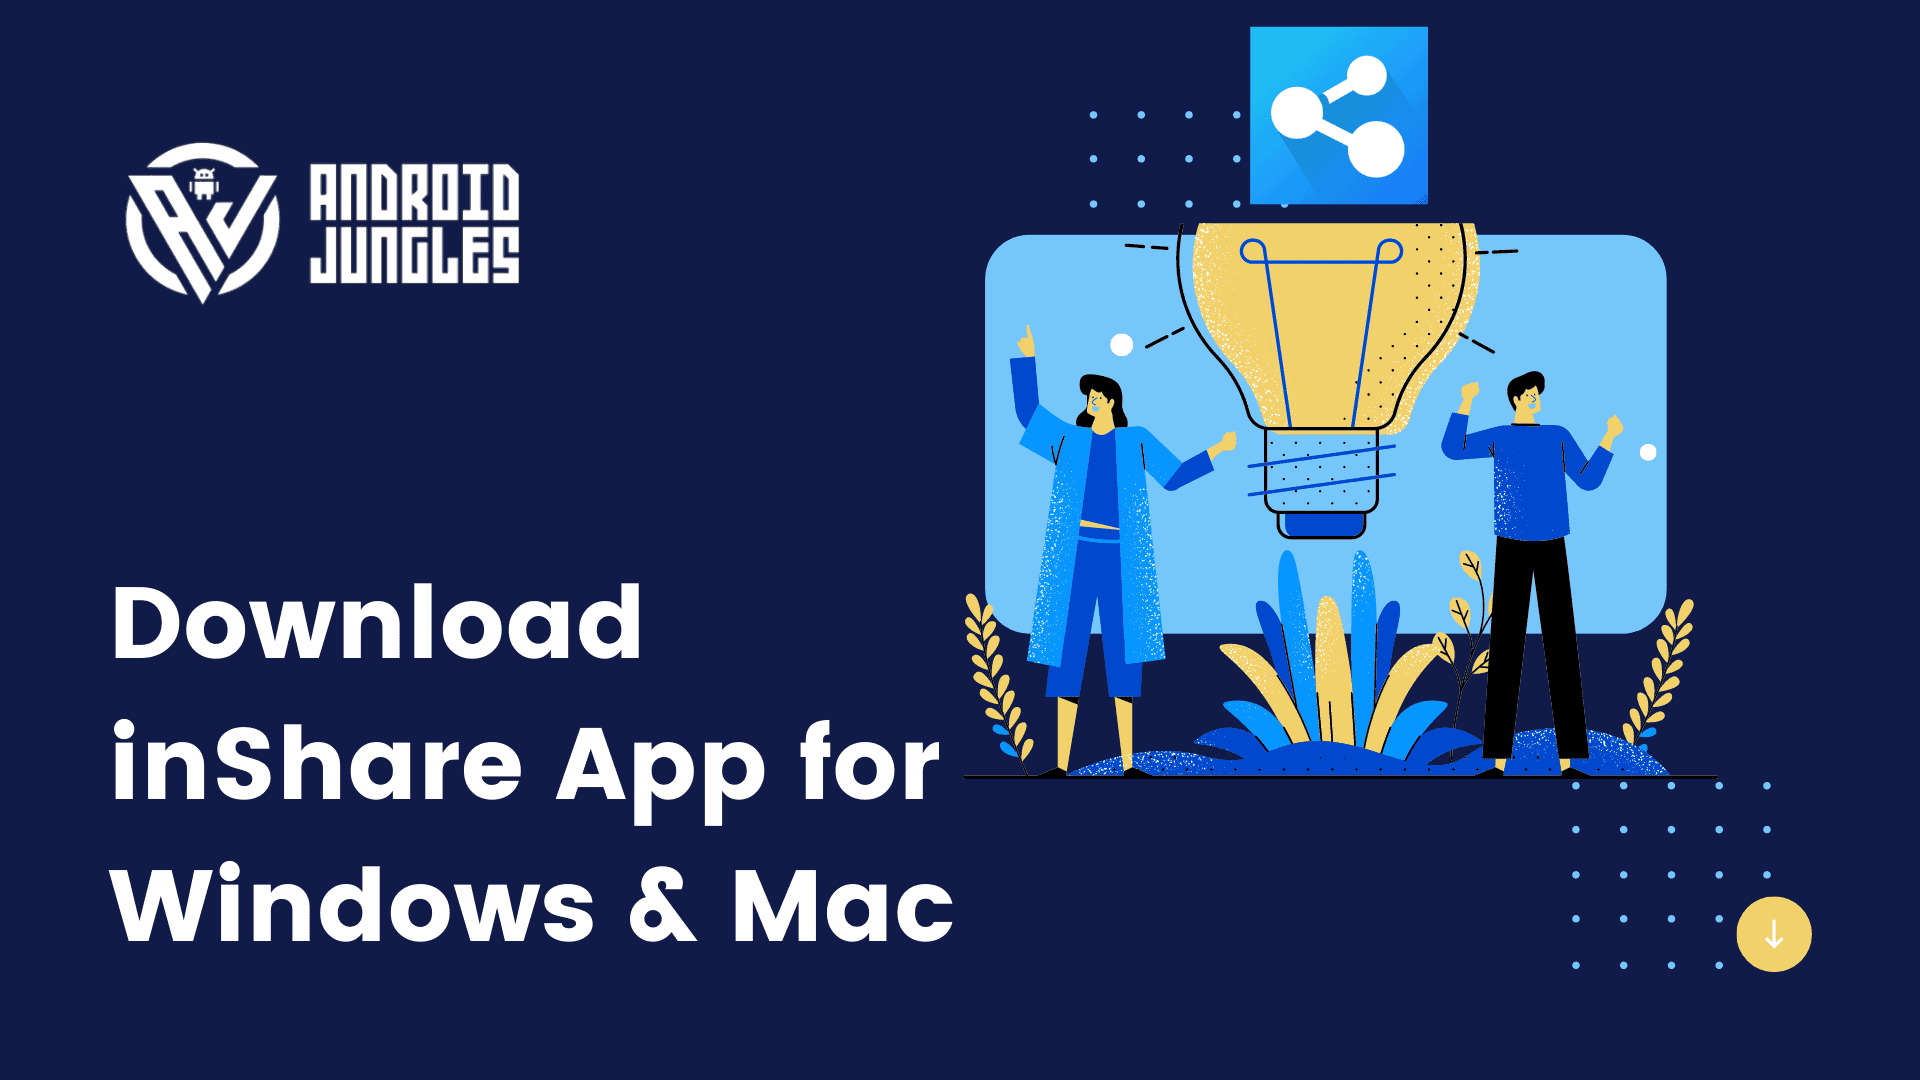 Download inShare App for PC - Windows/ Mac